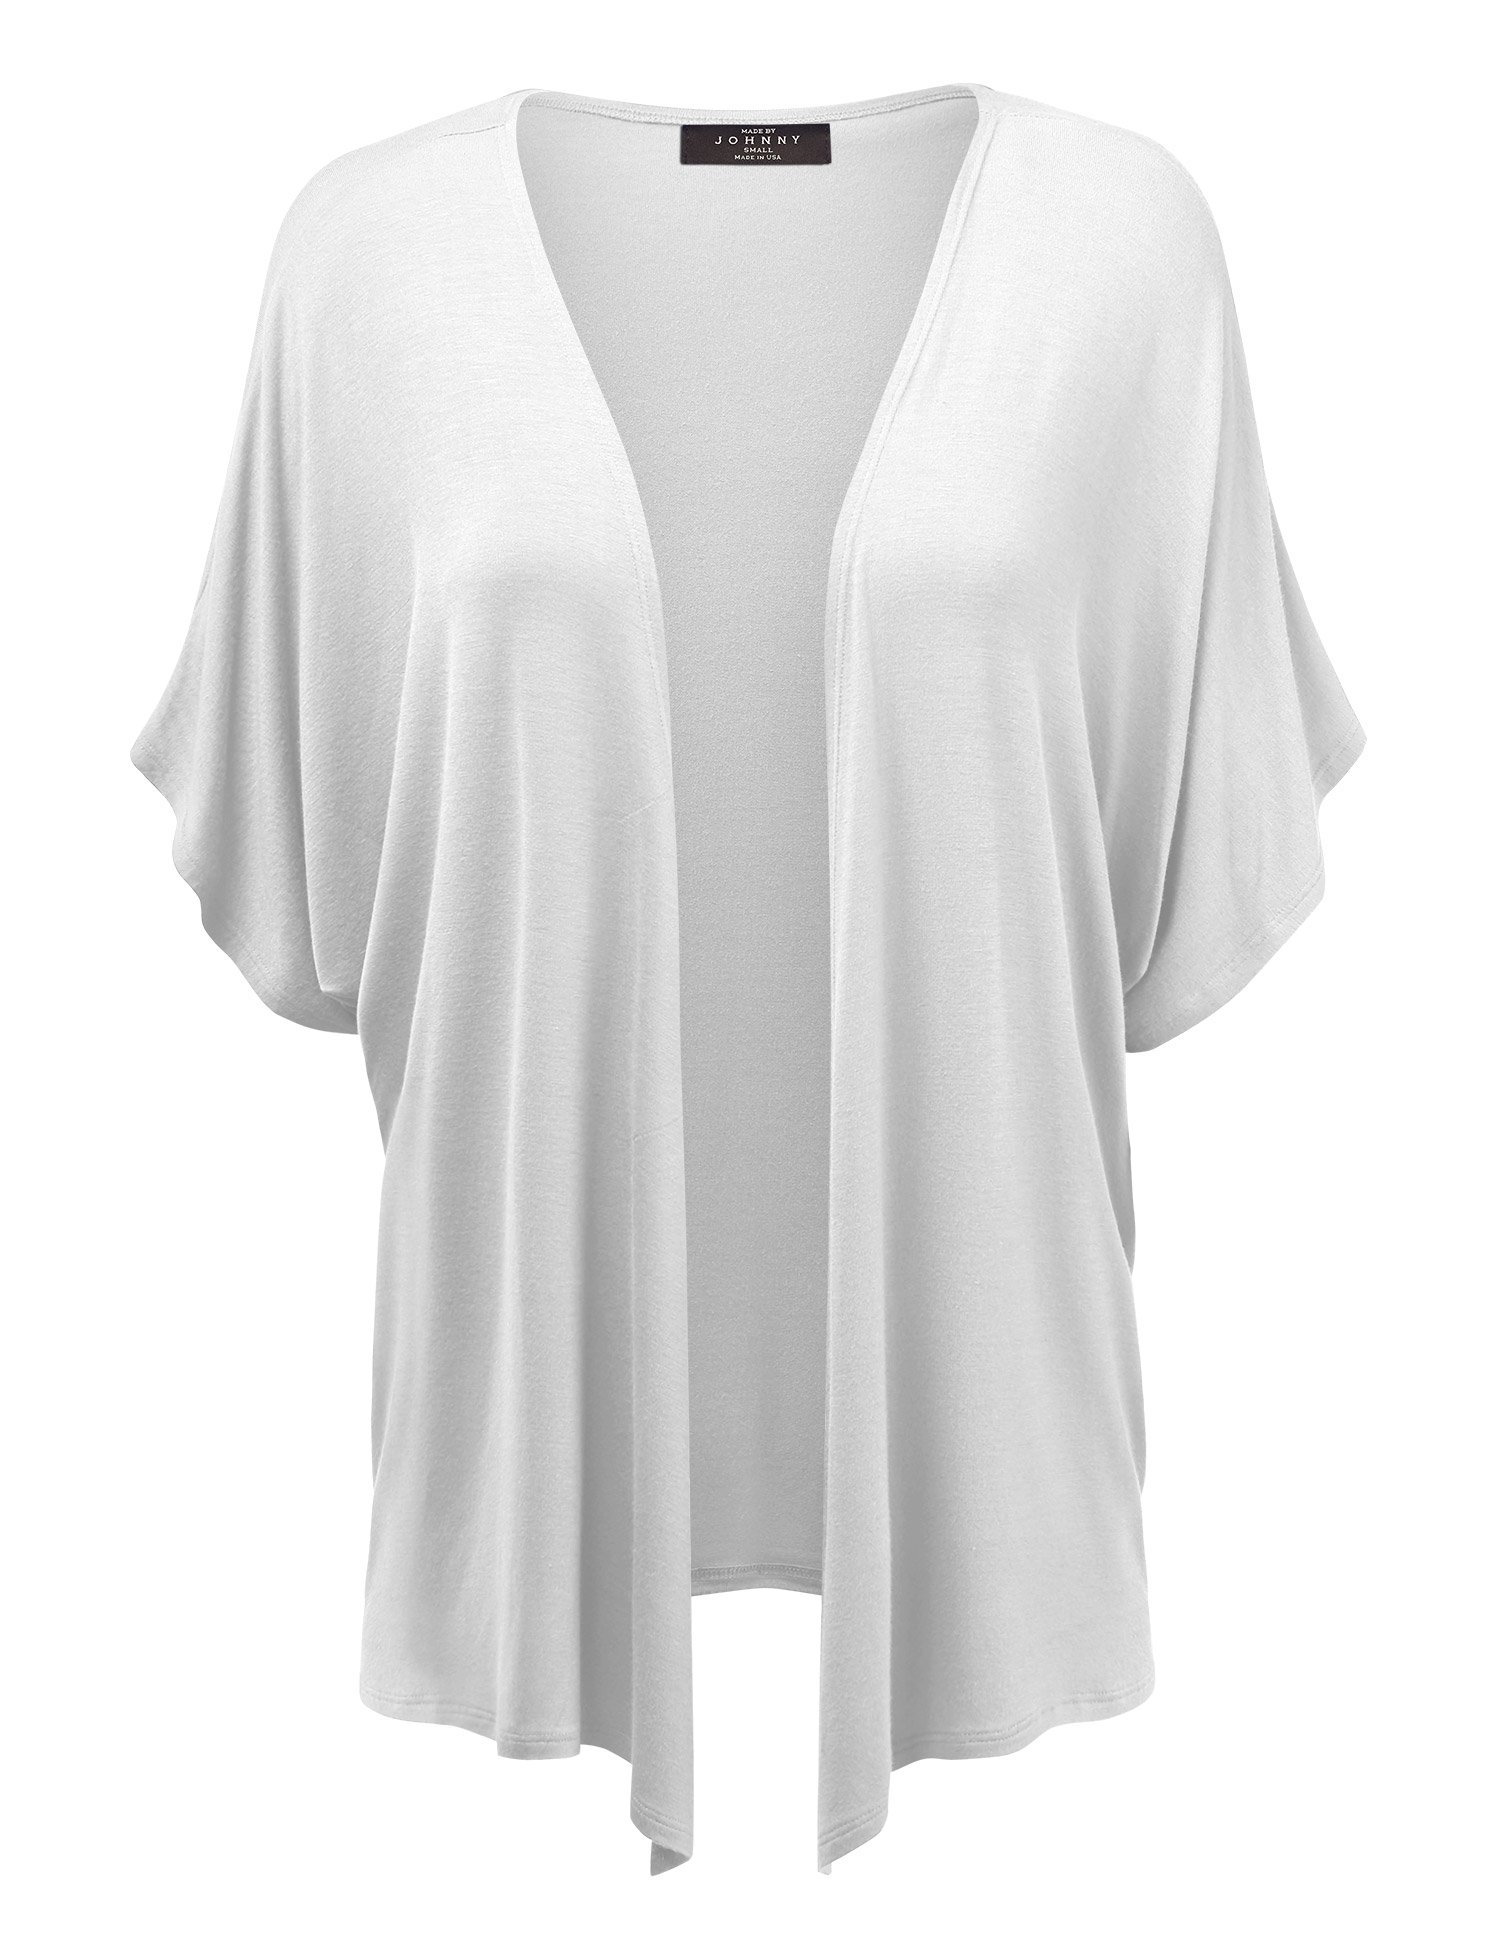 Made By Johnny MBJ Womens Short Sleeve Dolman Cardigan L White